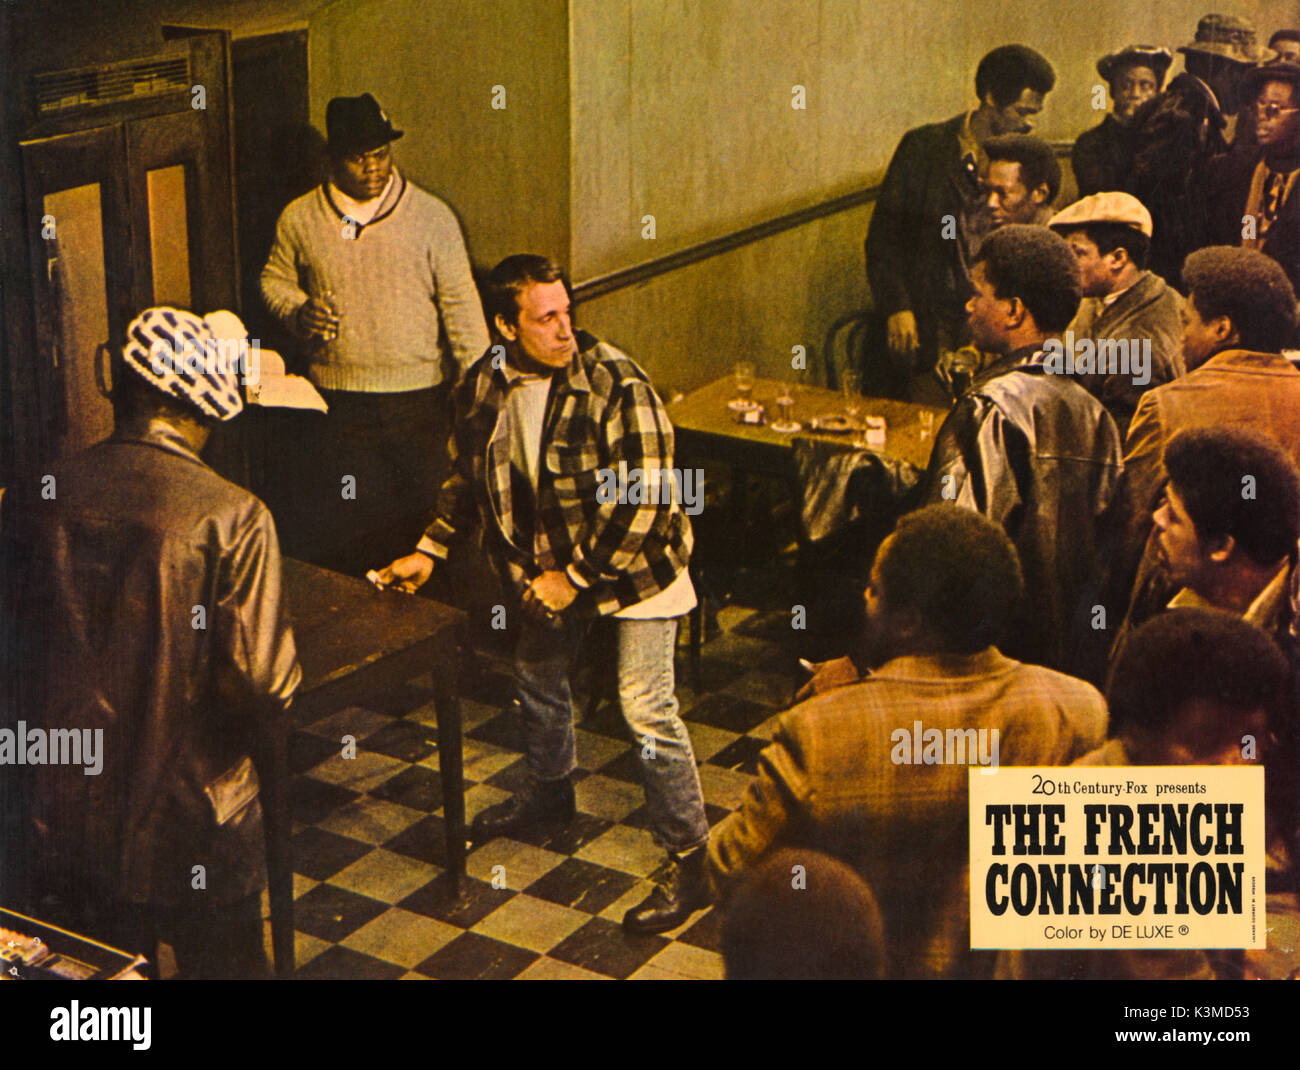 b095725f8ed THE FRENCH CONNECTION [US 1971] ROY SCHEIDER Date: 1971 Stock Photo ...